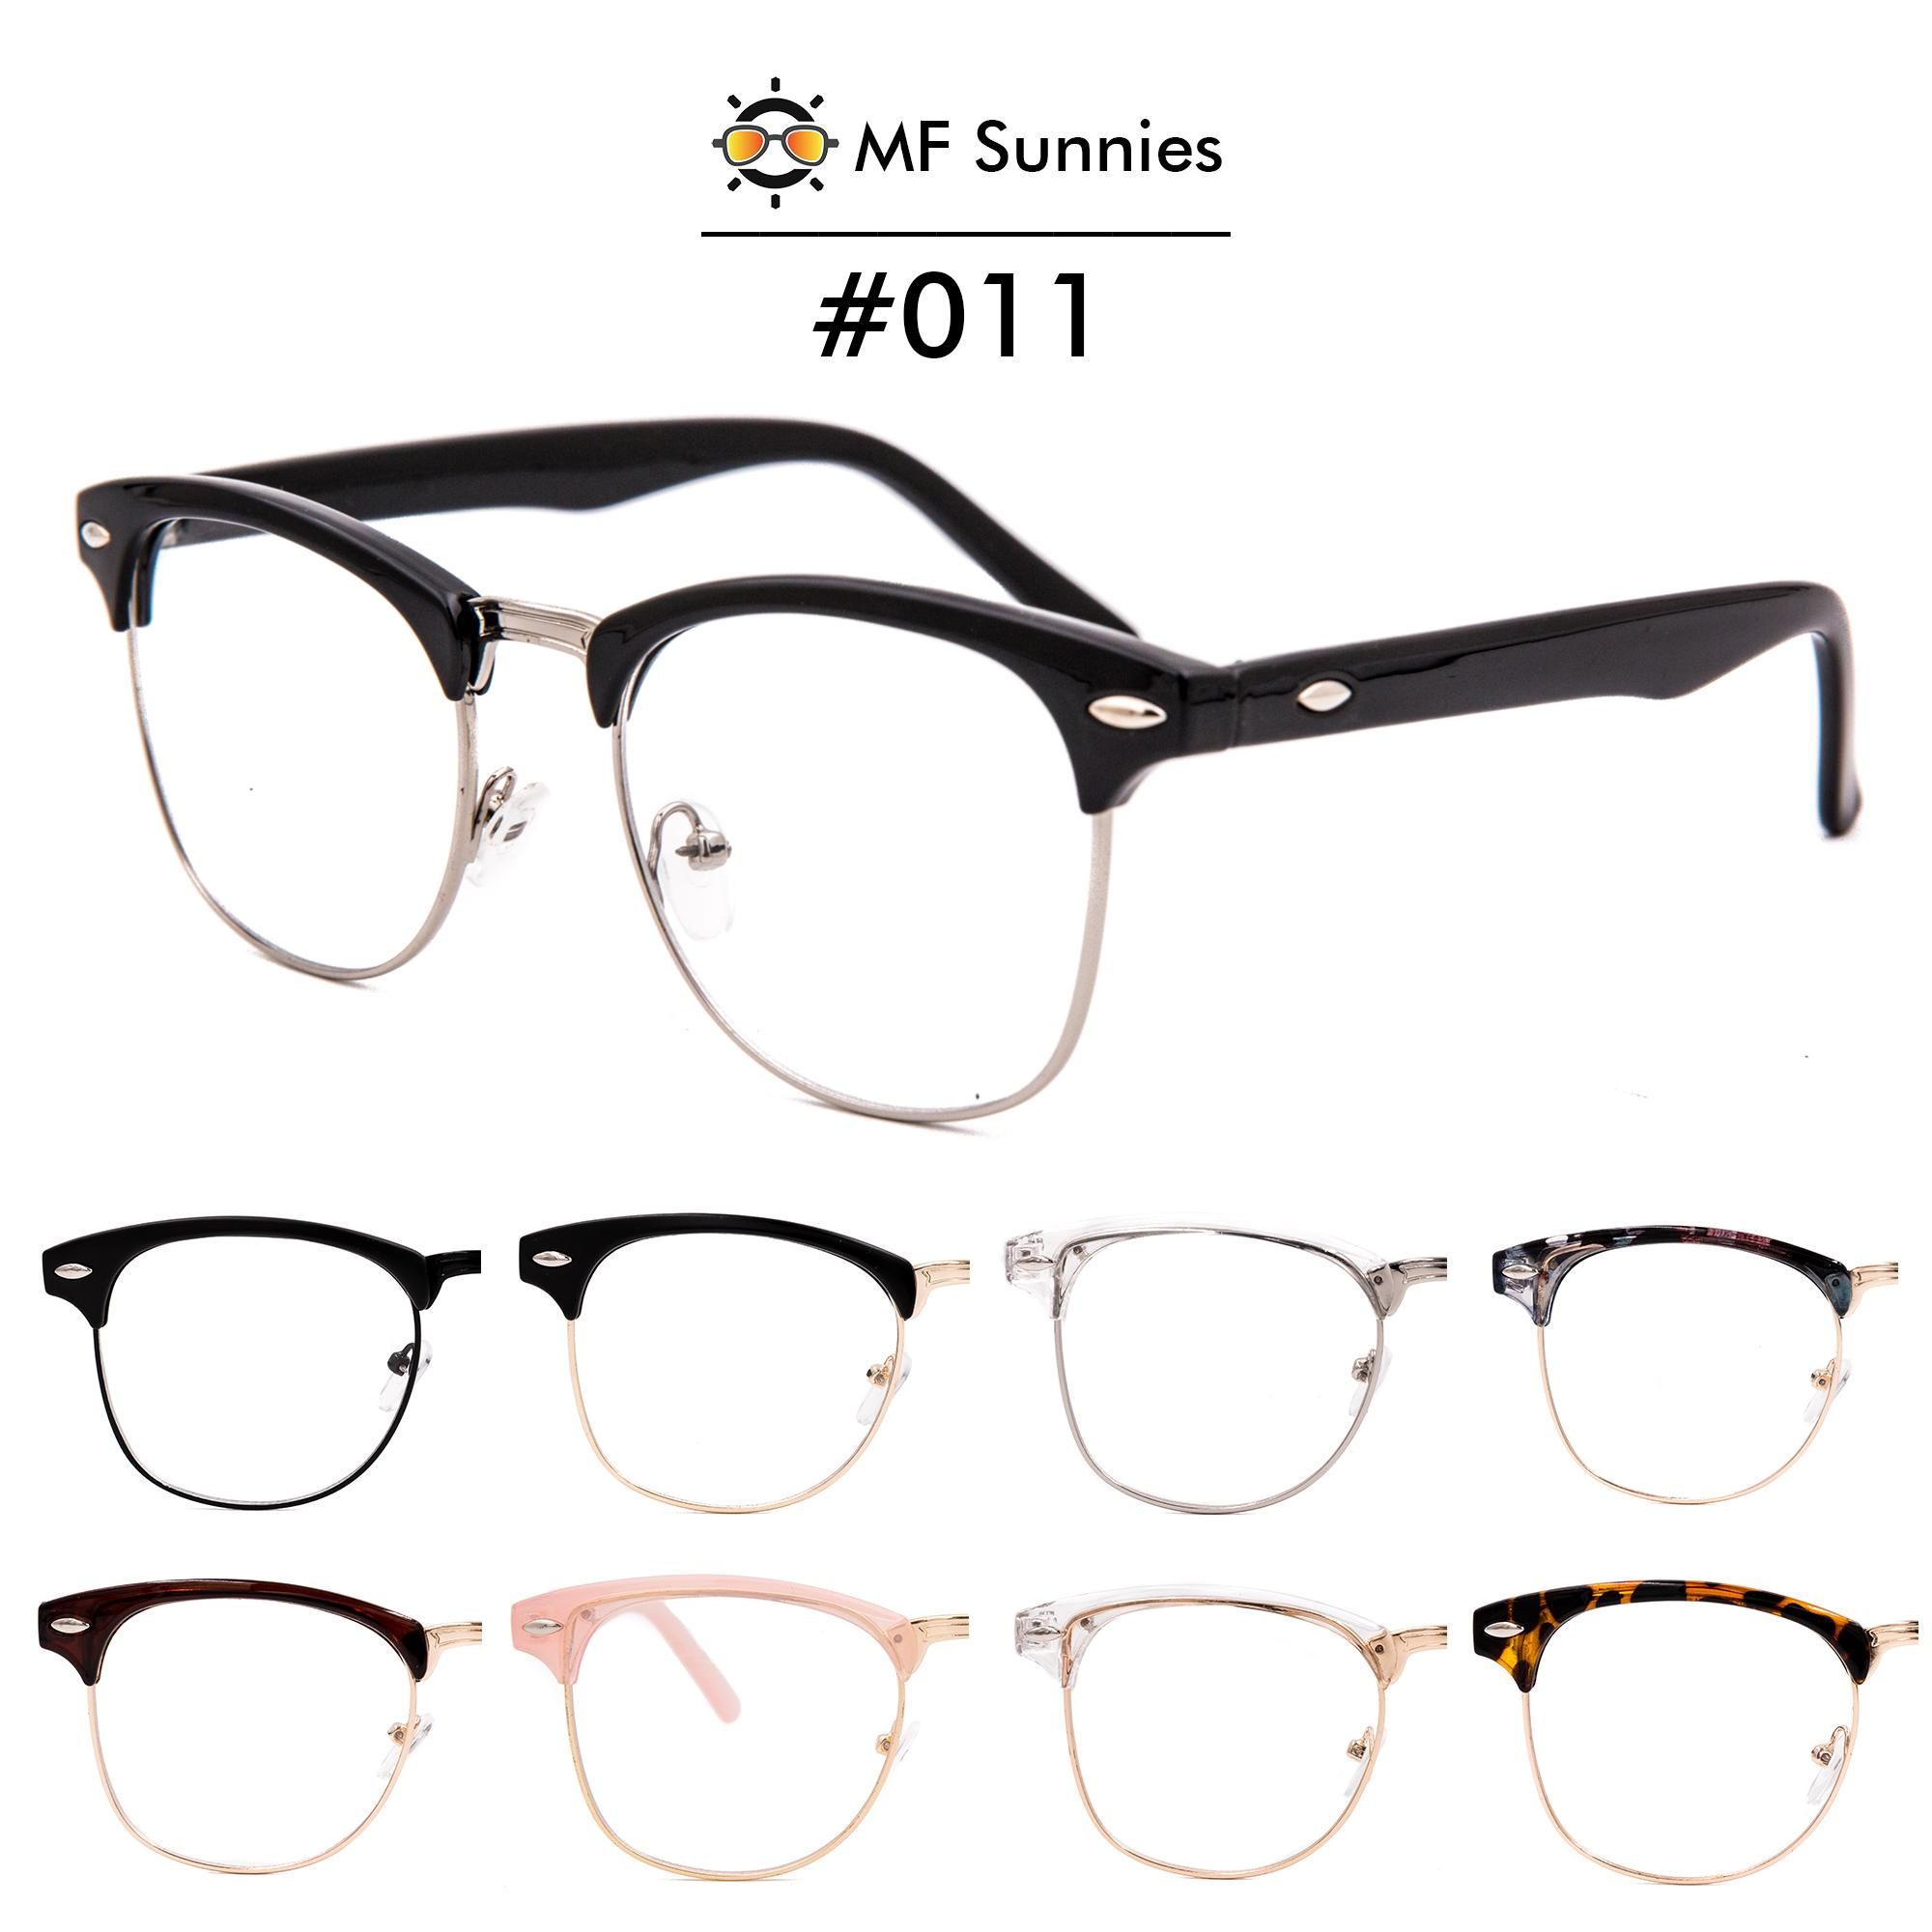 ab744ee468 63745 items found in Eyeglasses. MFSunnies Clubmaster Computer Anti  Radiation Blue light Classic Metal Hinges High quality acetate frame